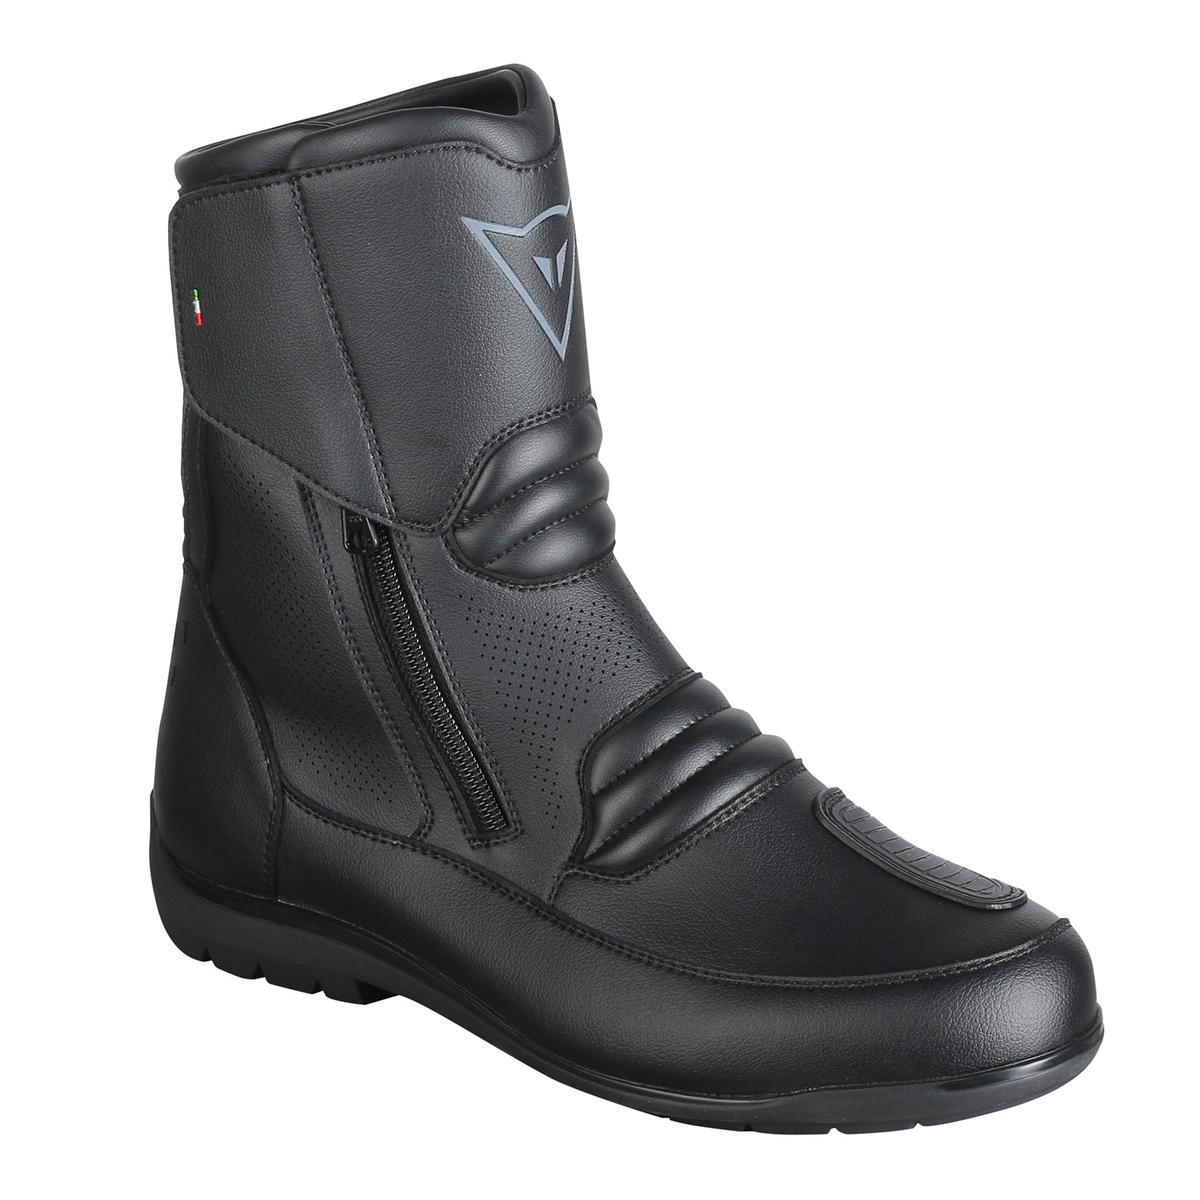 NIGHTHAWK D1 GORE-TEX® LOW-BOOTS Dainese  BLACK/BLACK